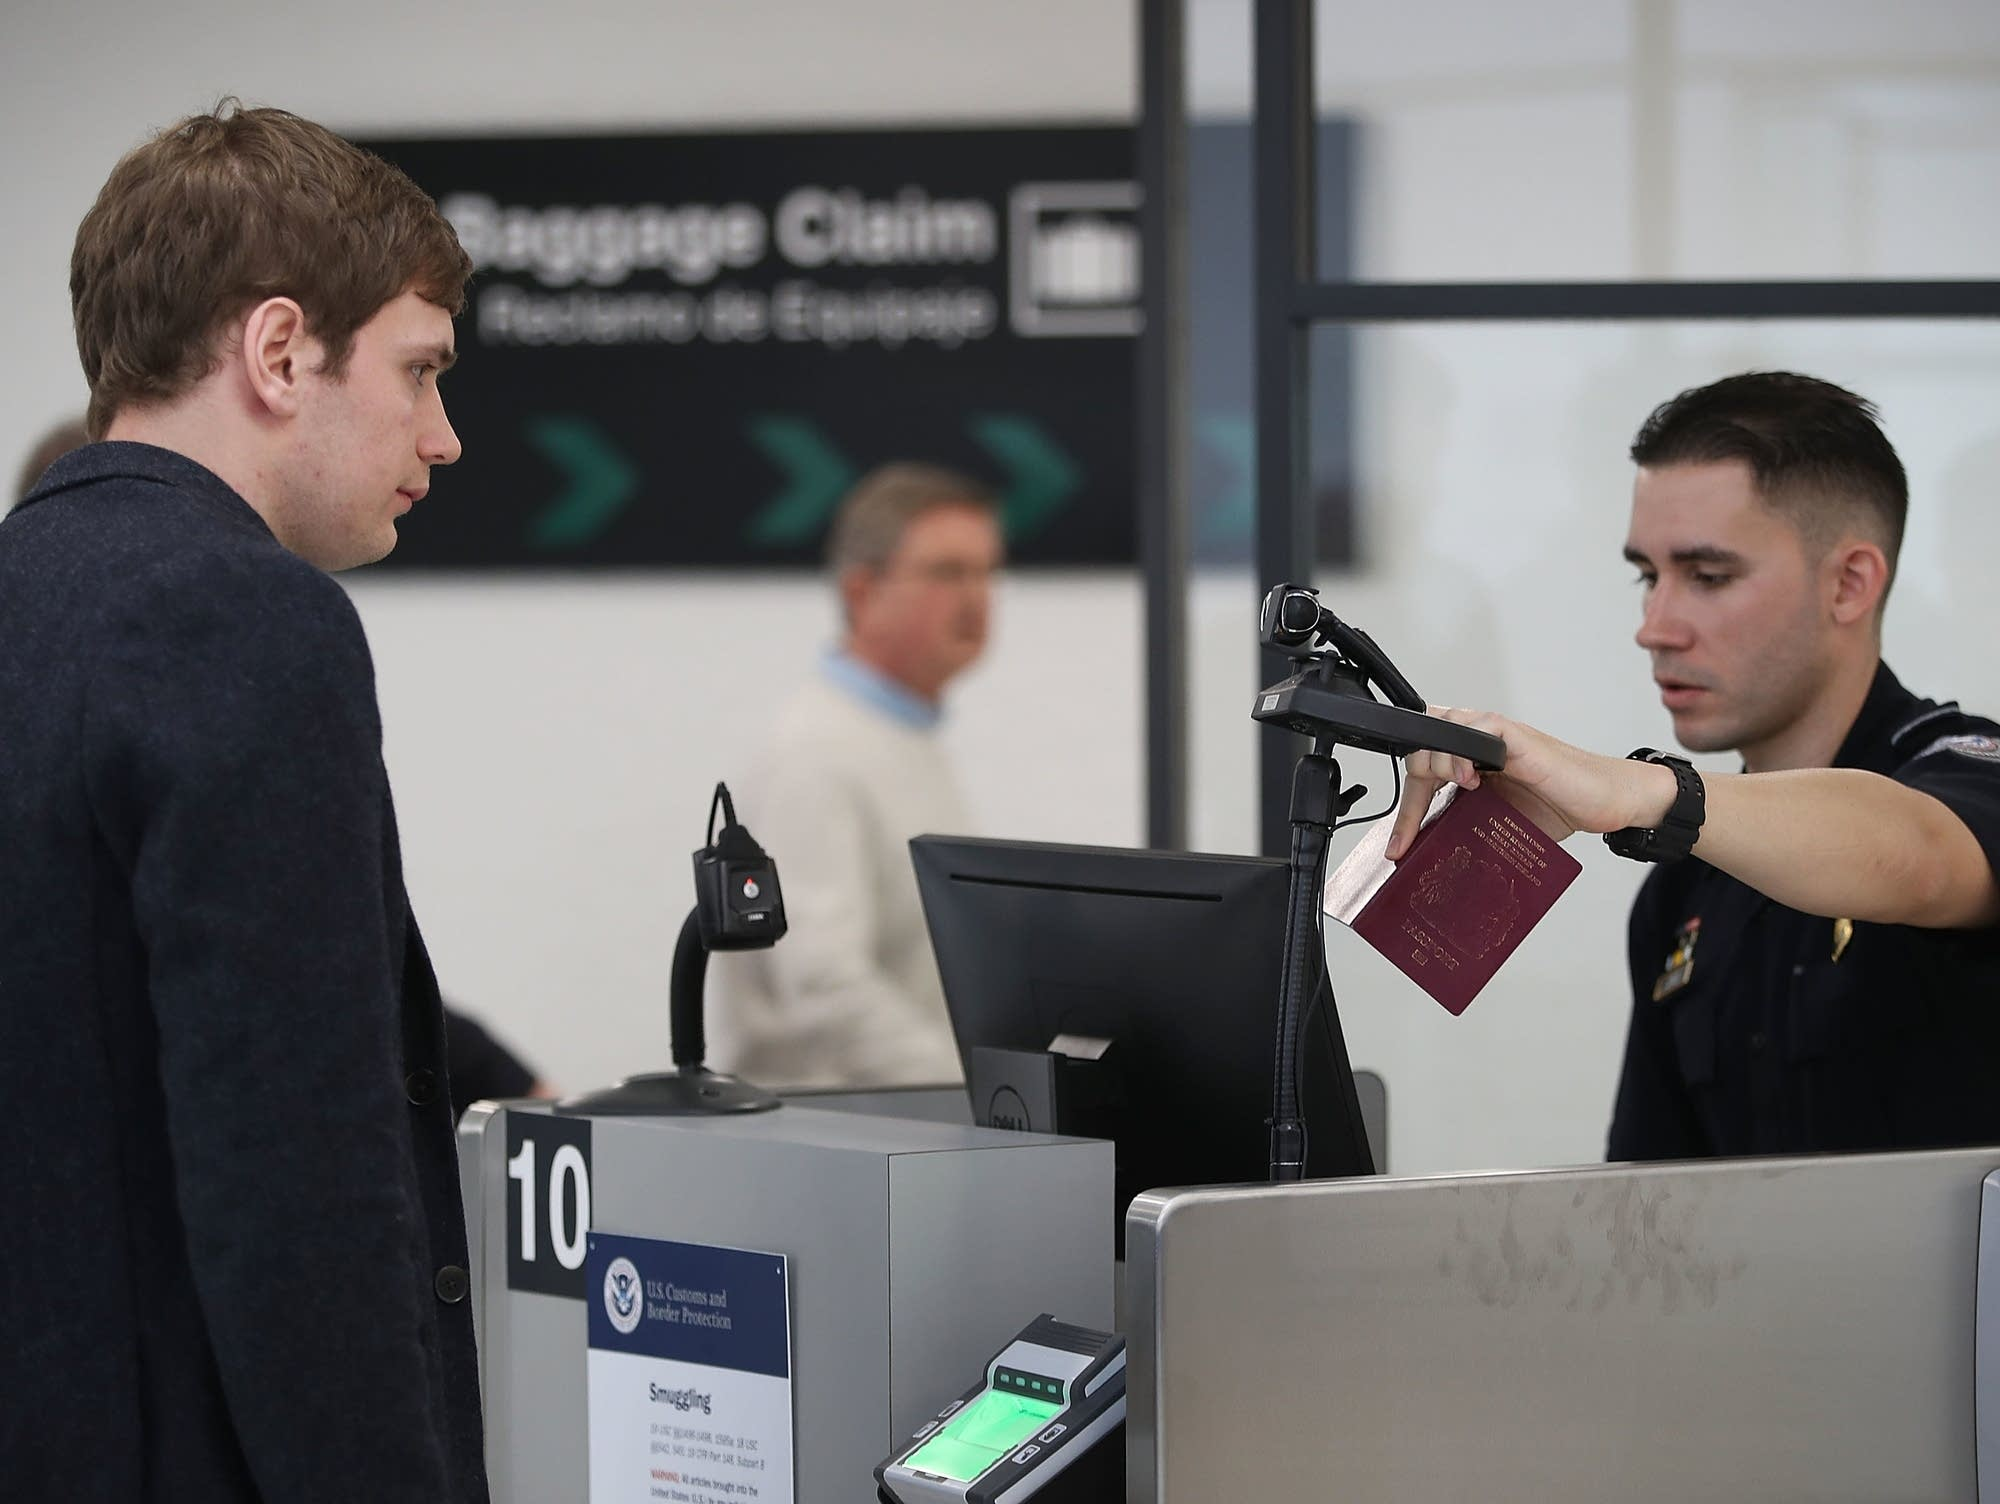 A Customs officer uses facial recognition technology.